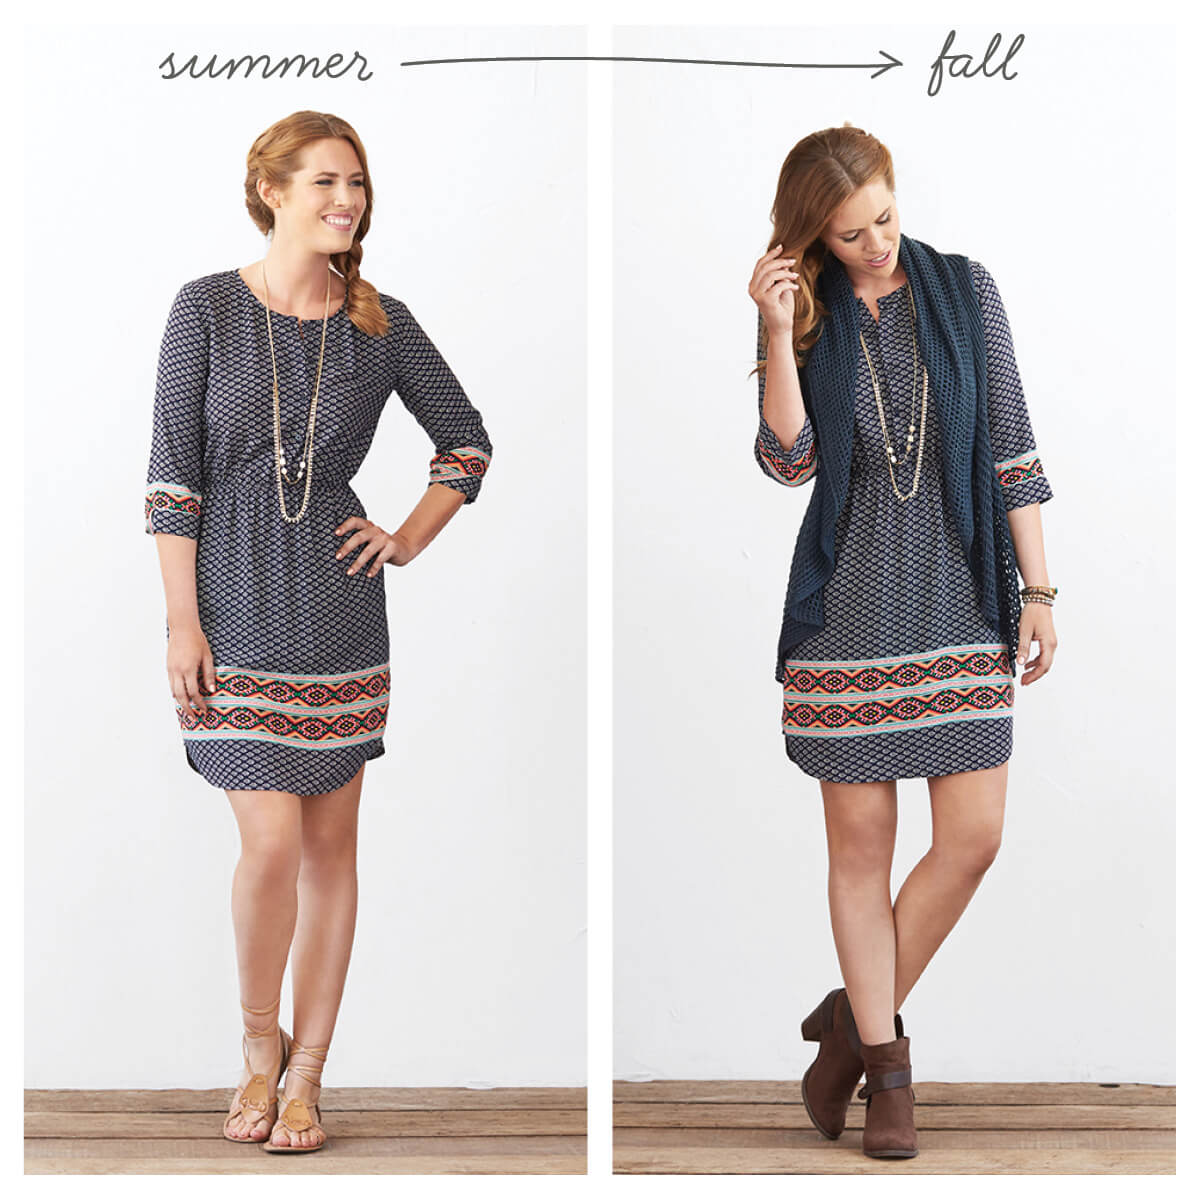 Wear summer dress in fall